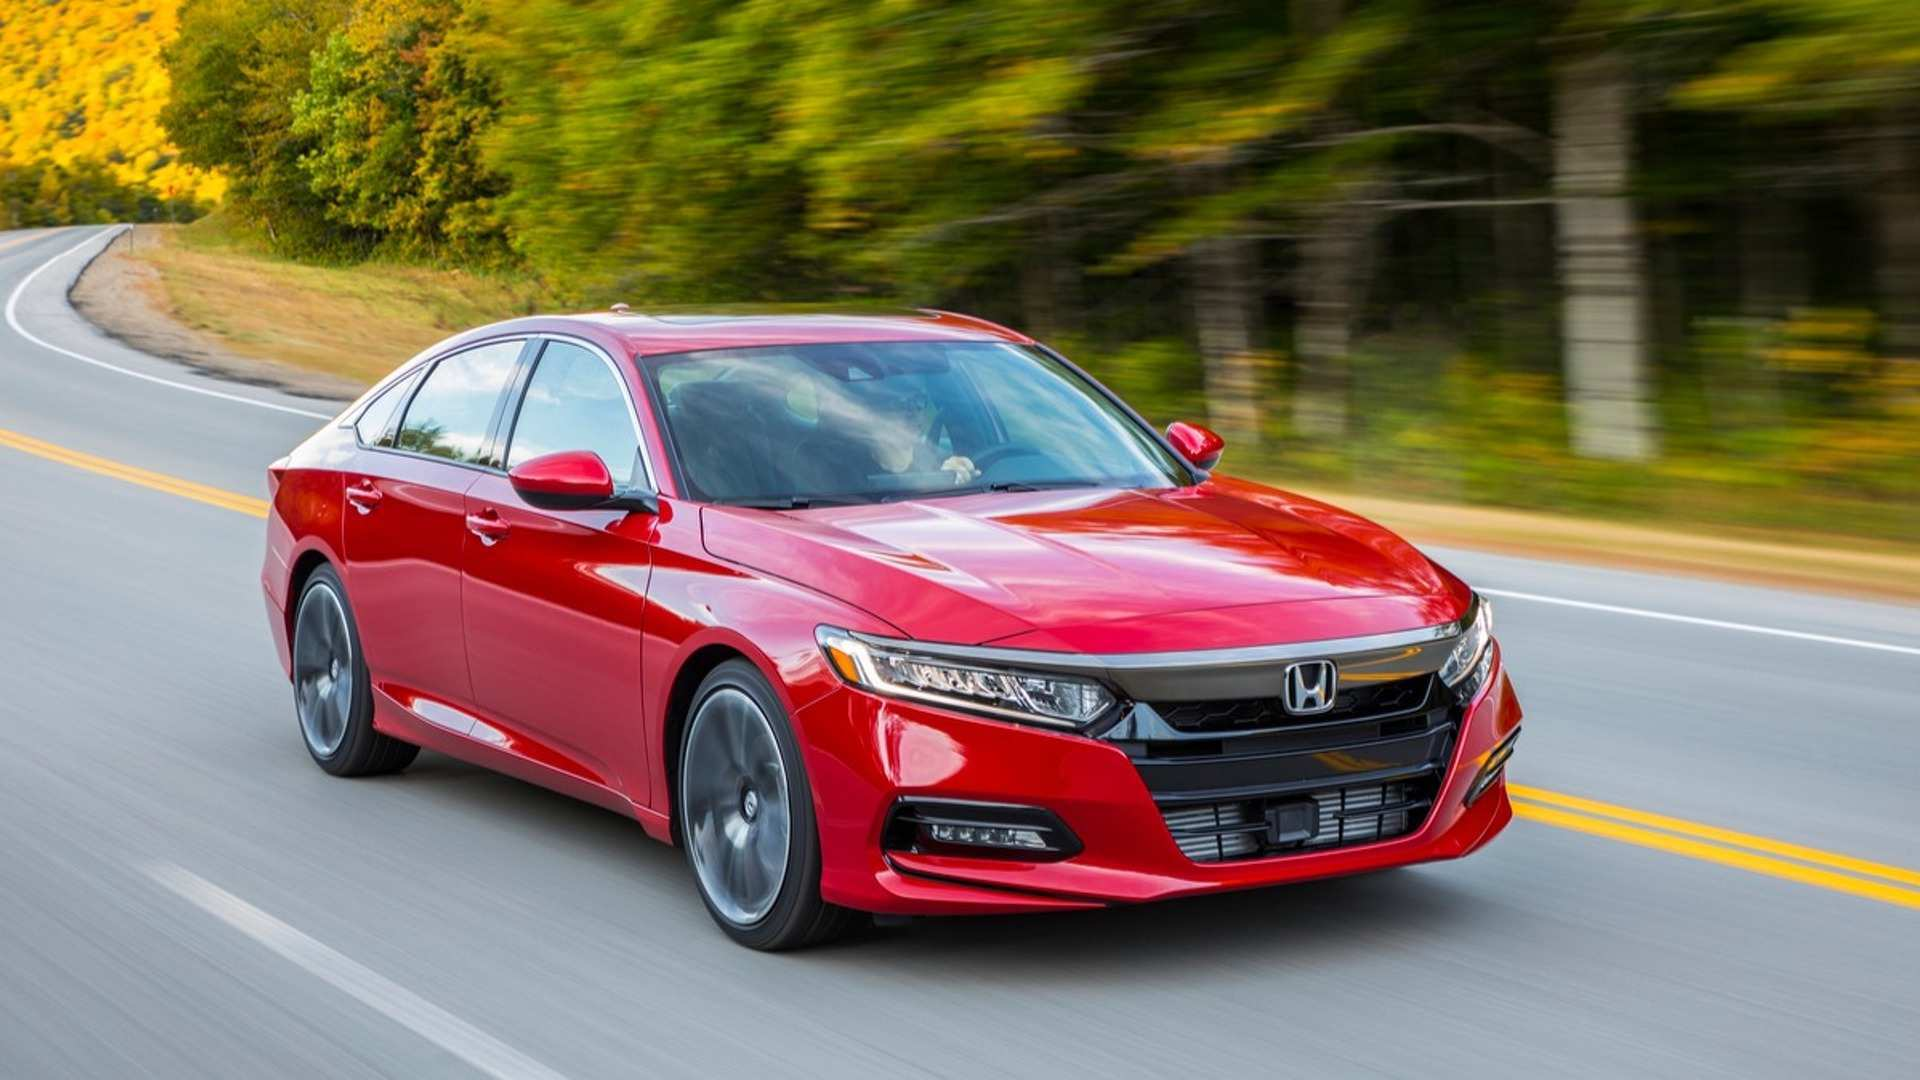 36 New 2020 Honda Accord Sedan Research New